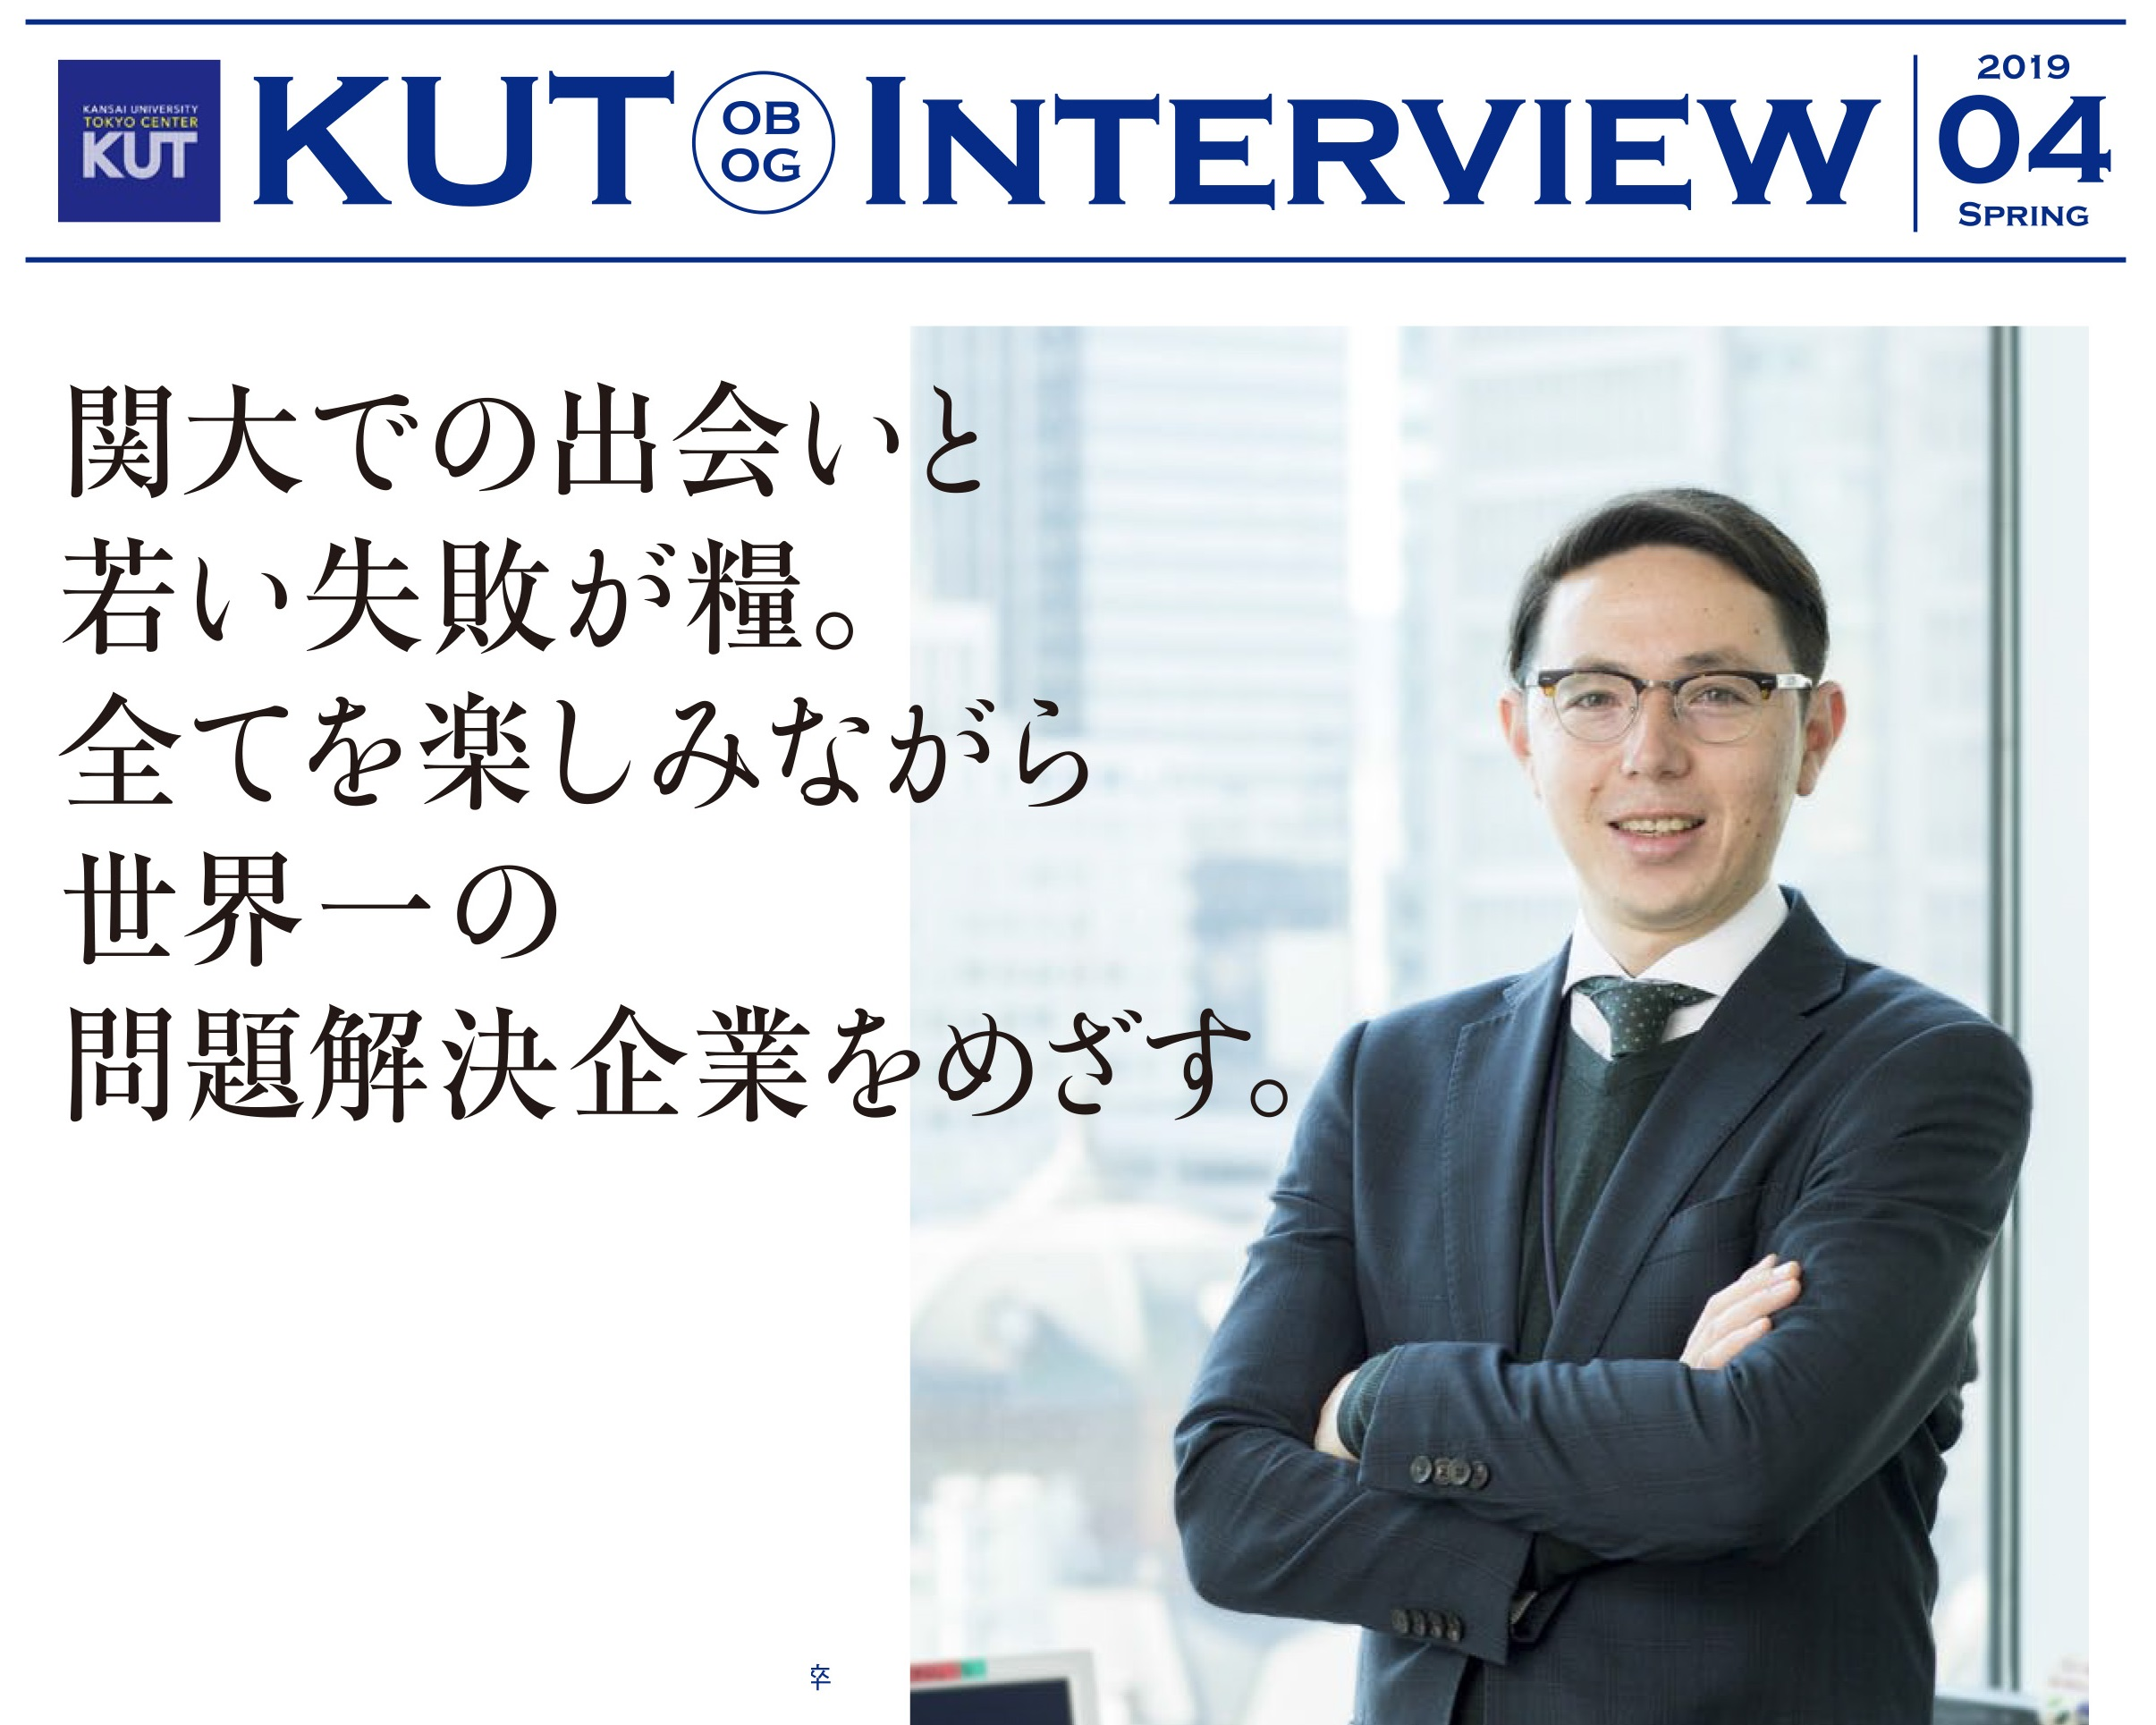 <KUT INTERVIEW 第4号> 首都圏で活躍する卒業生をご紹介します